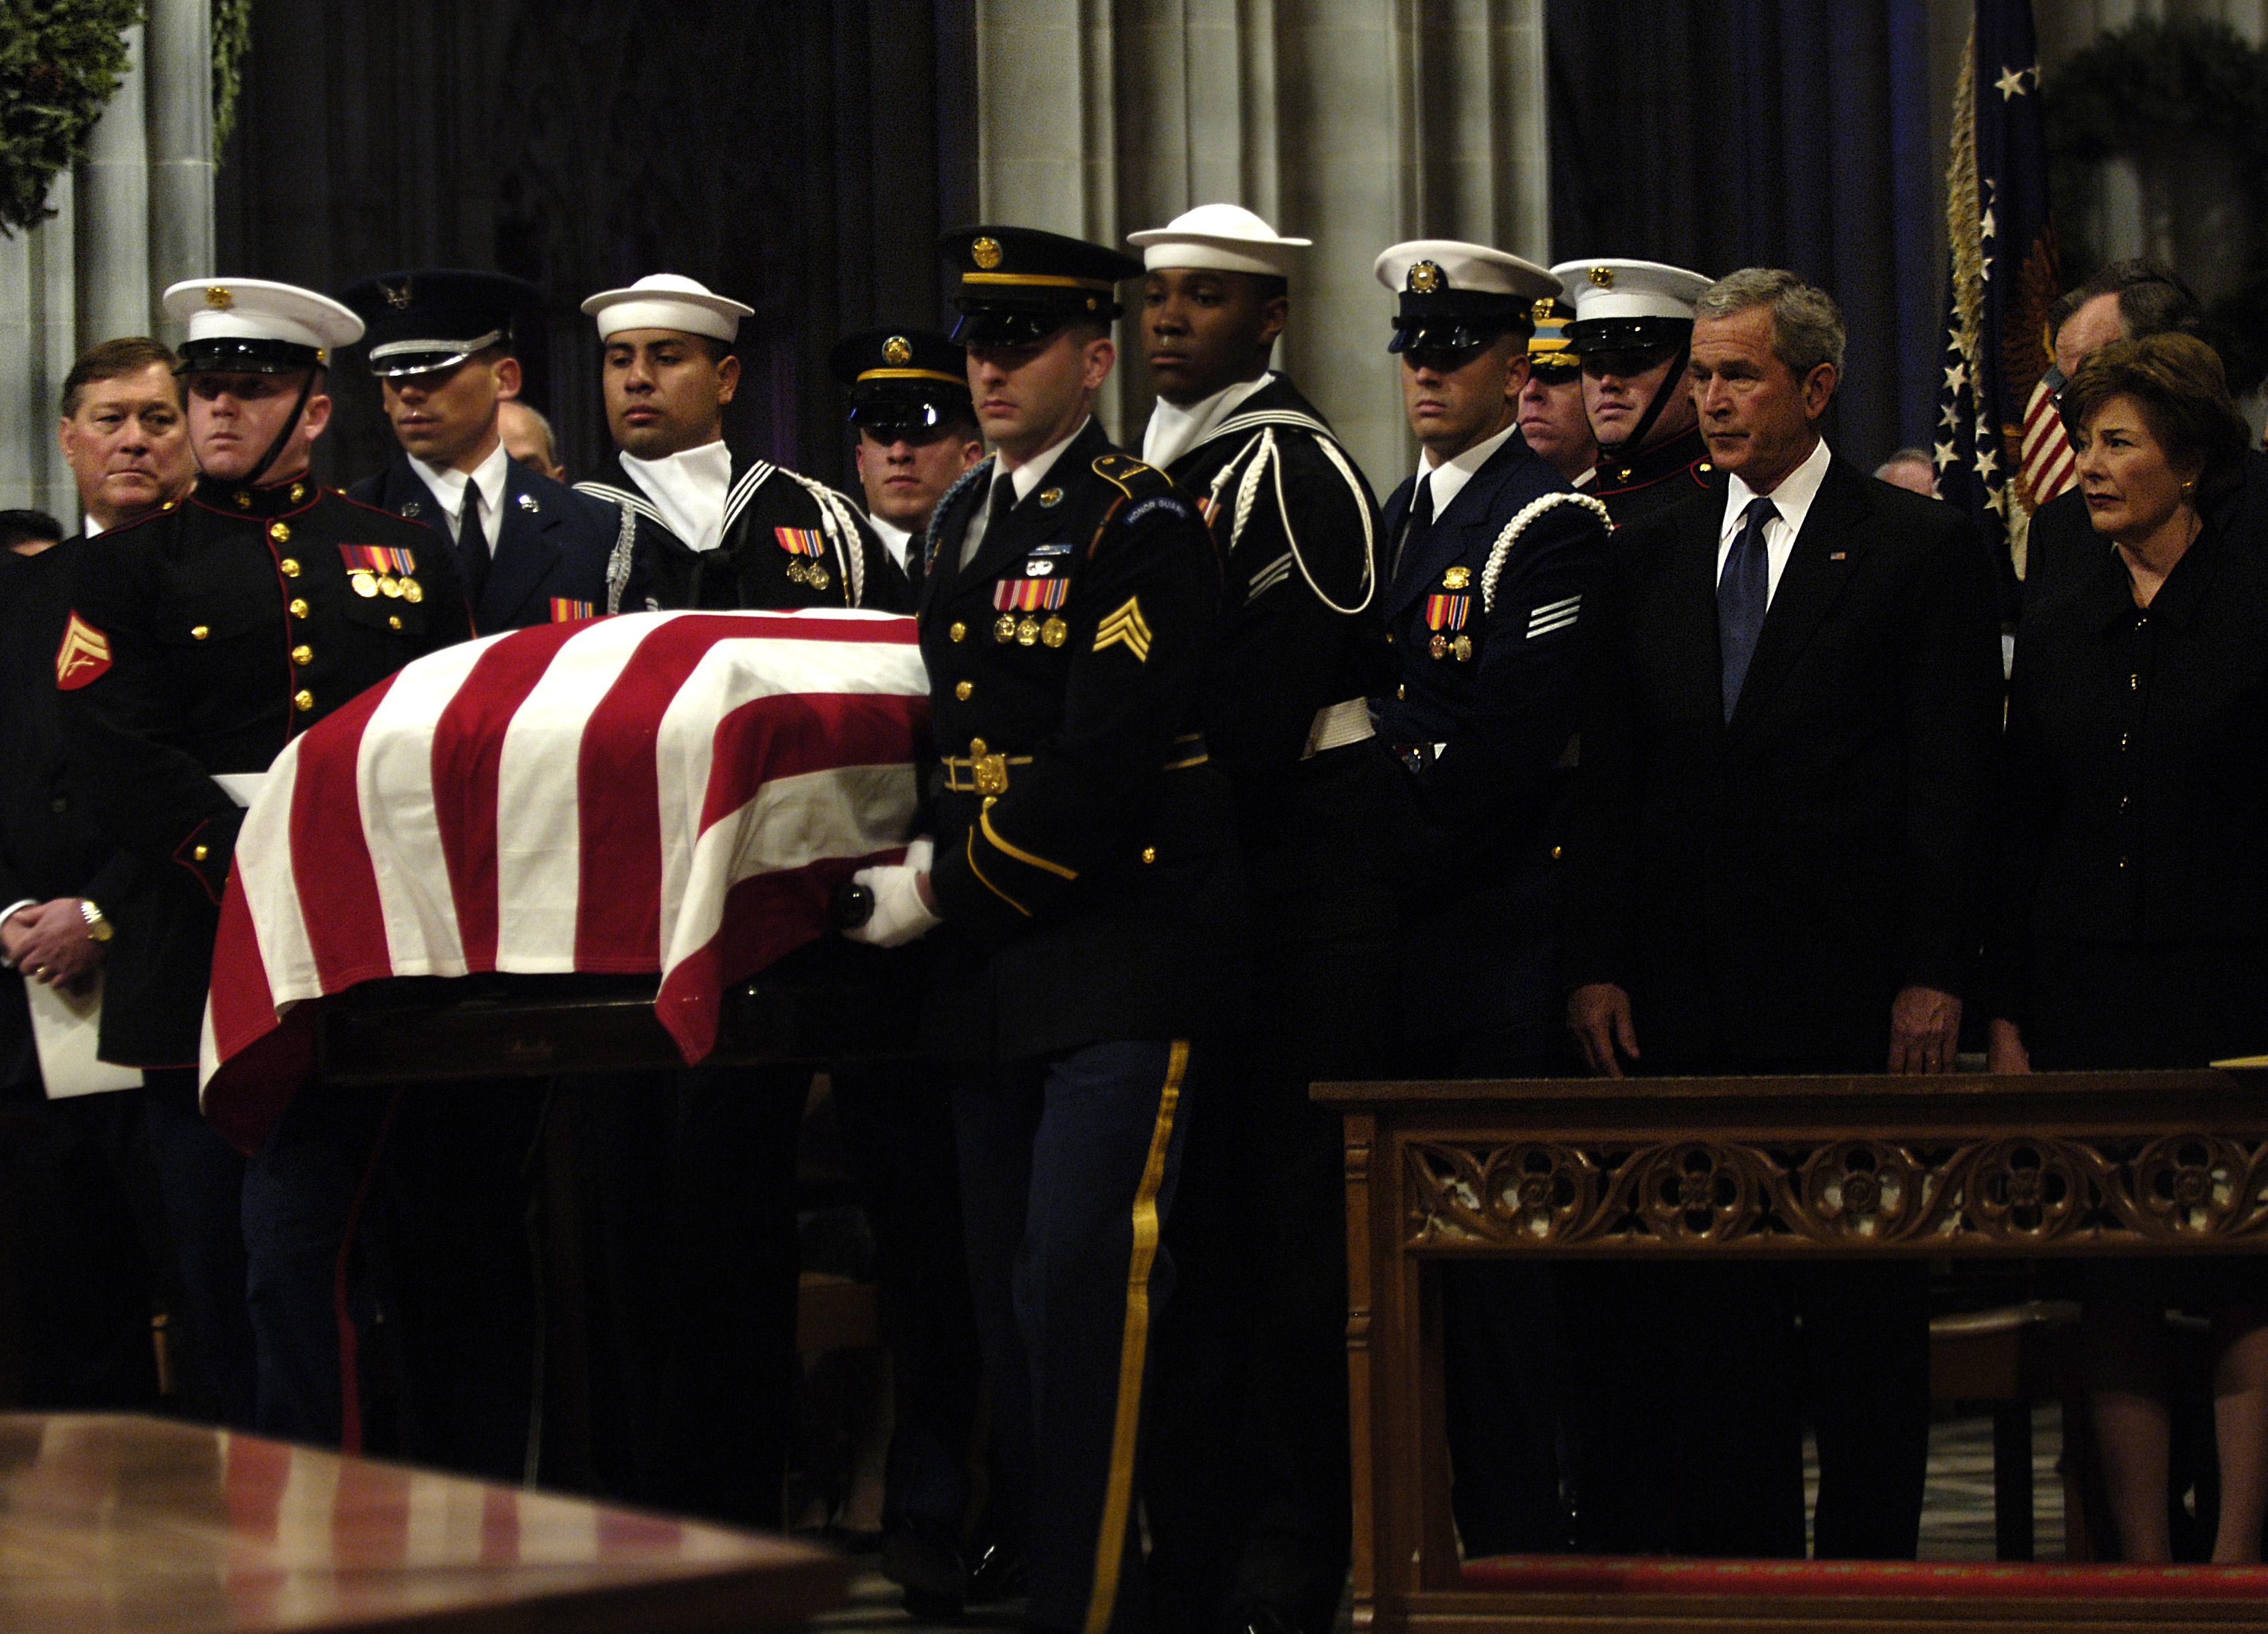 u s department of > photos > photo essays > essay view hi res photo gallery middot president bush delivers a eulogy during